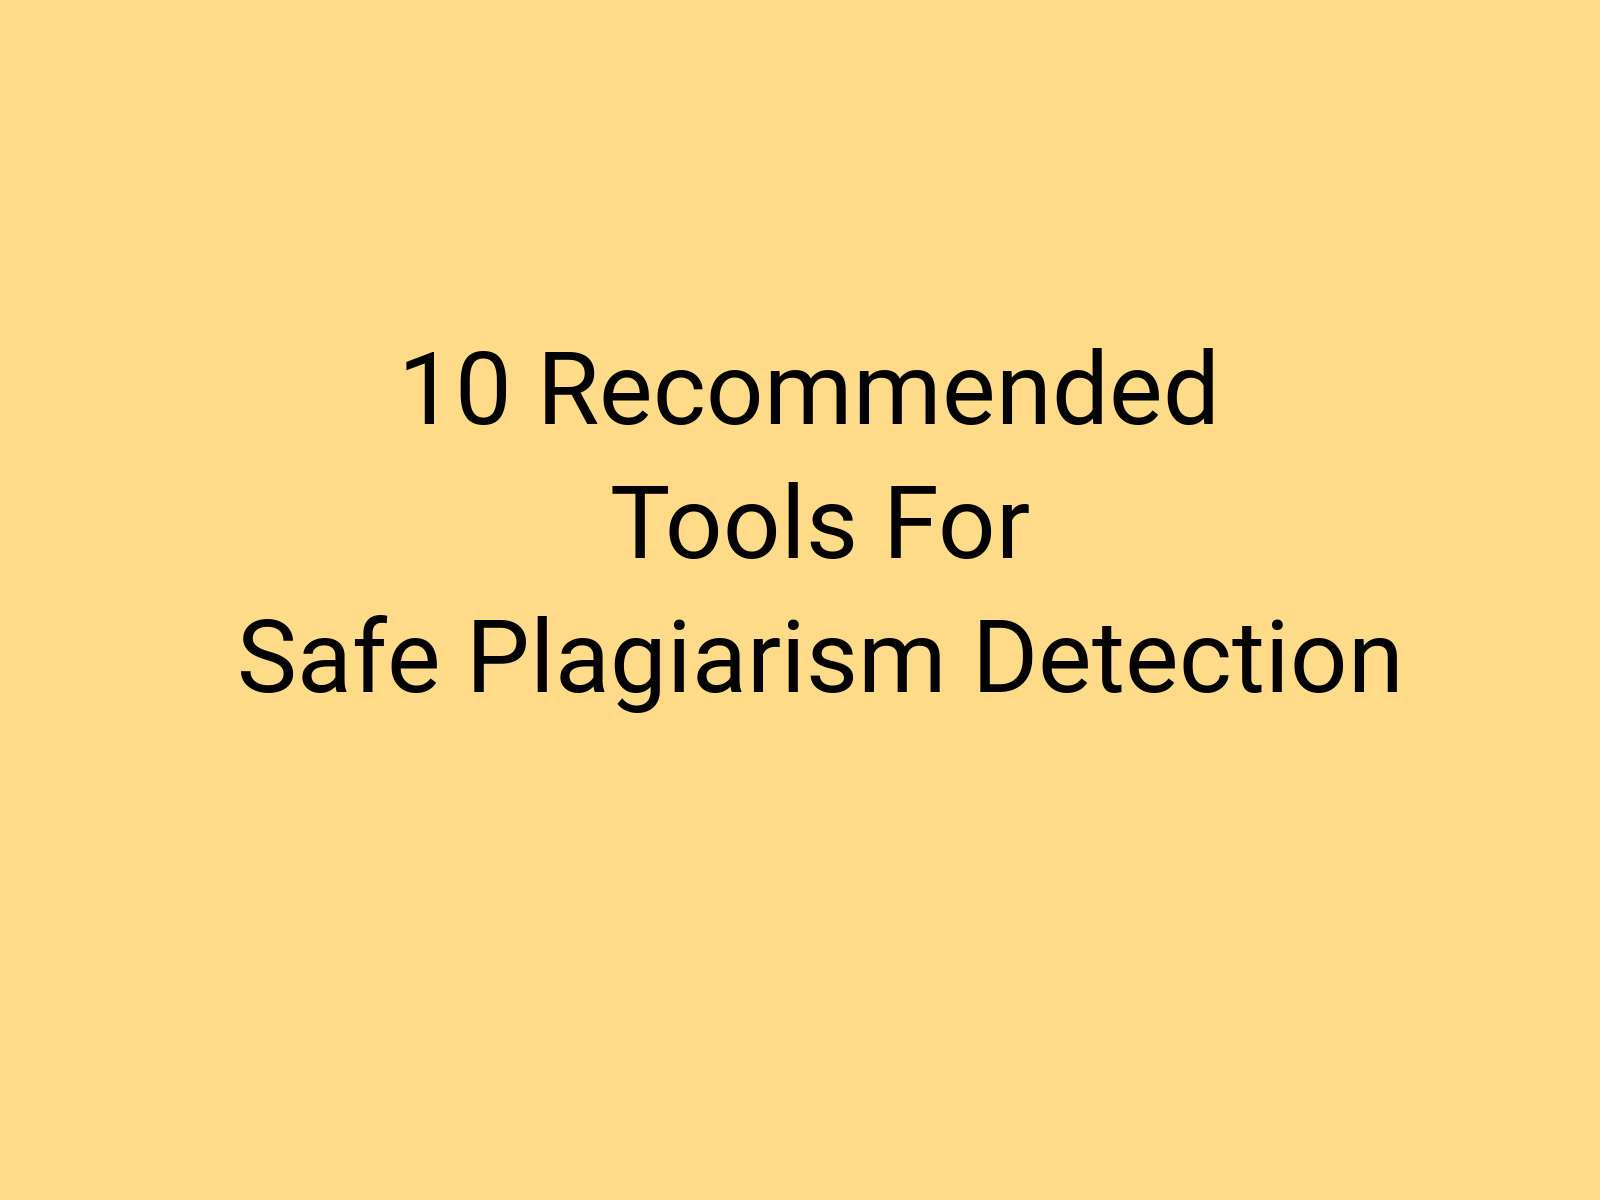 018 Plagiarism Detection Software Research Paper Best Amazing Writing Full